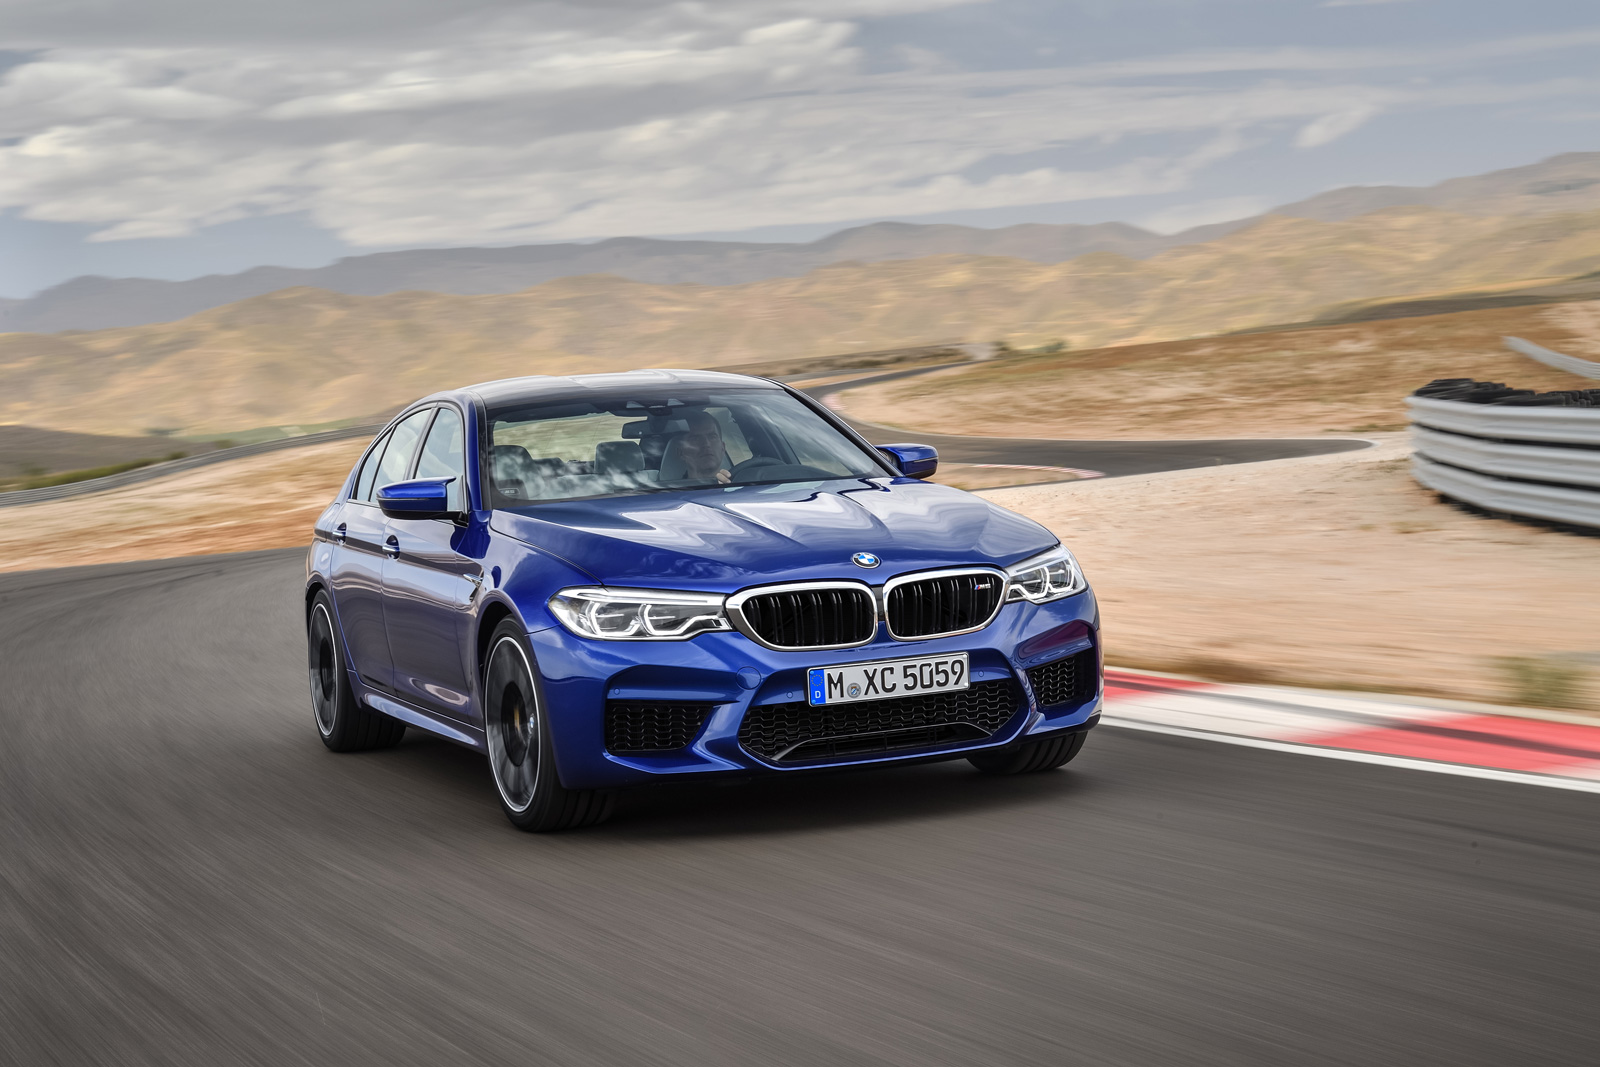 2018 bmw m5 04 bimmerfest bmw forum, bmw news, bmw research, bmw european  at arjmand.co